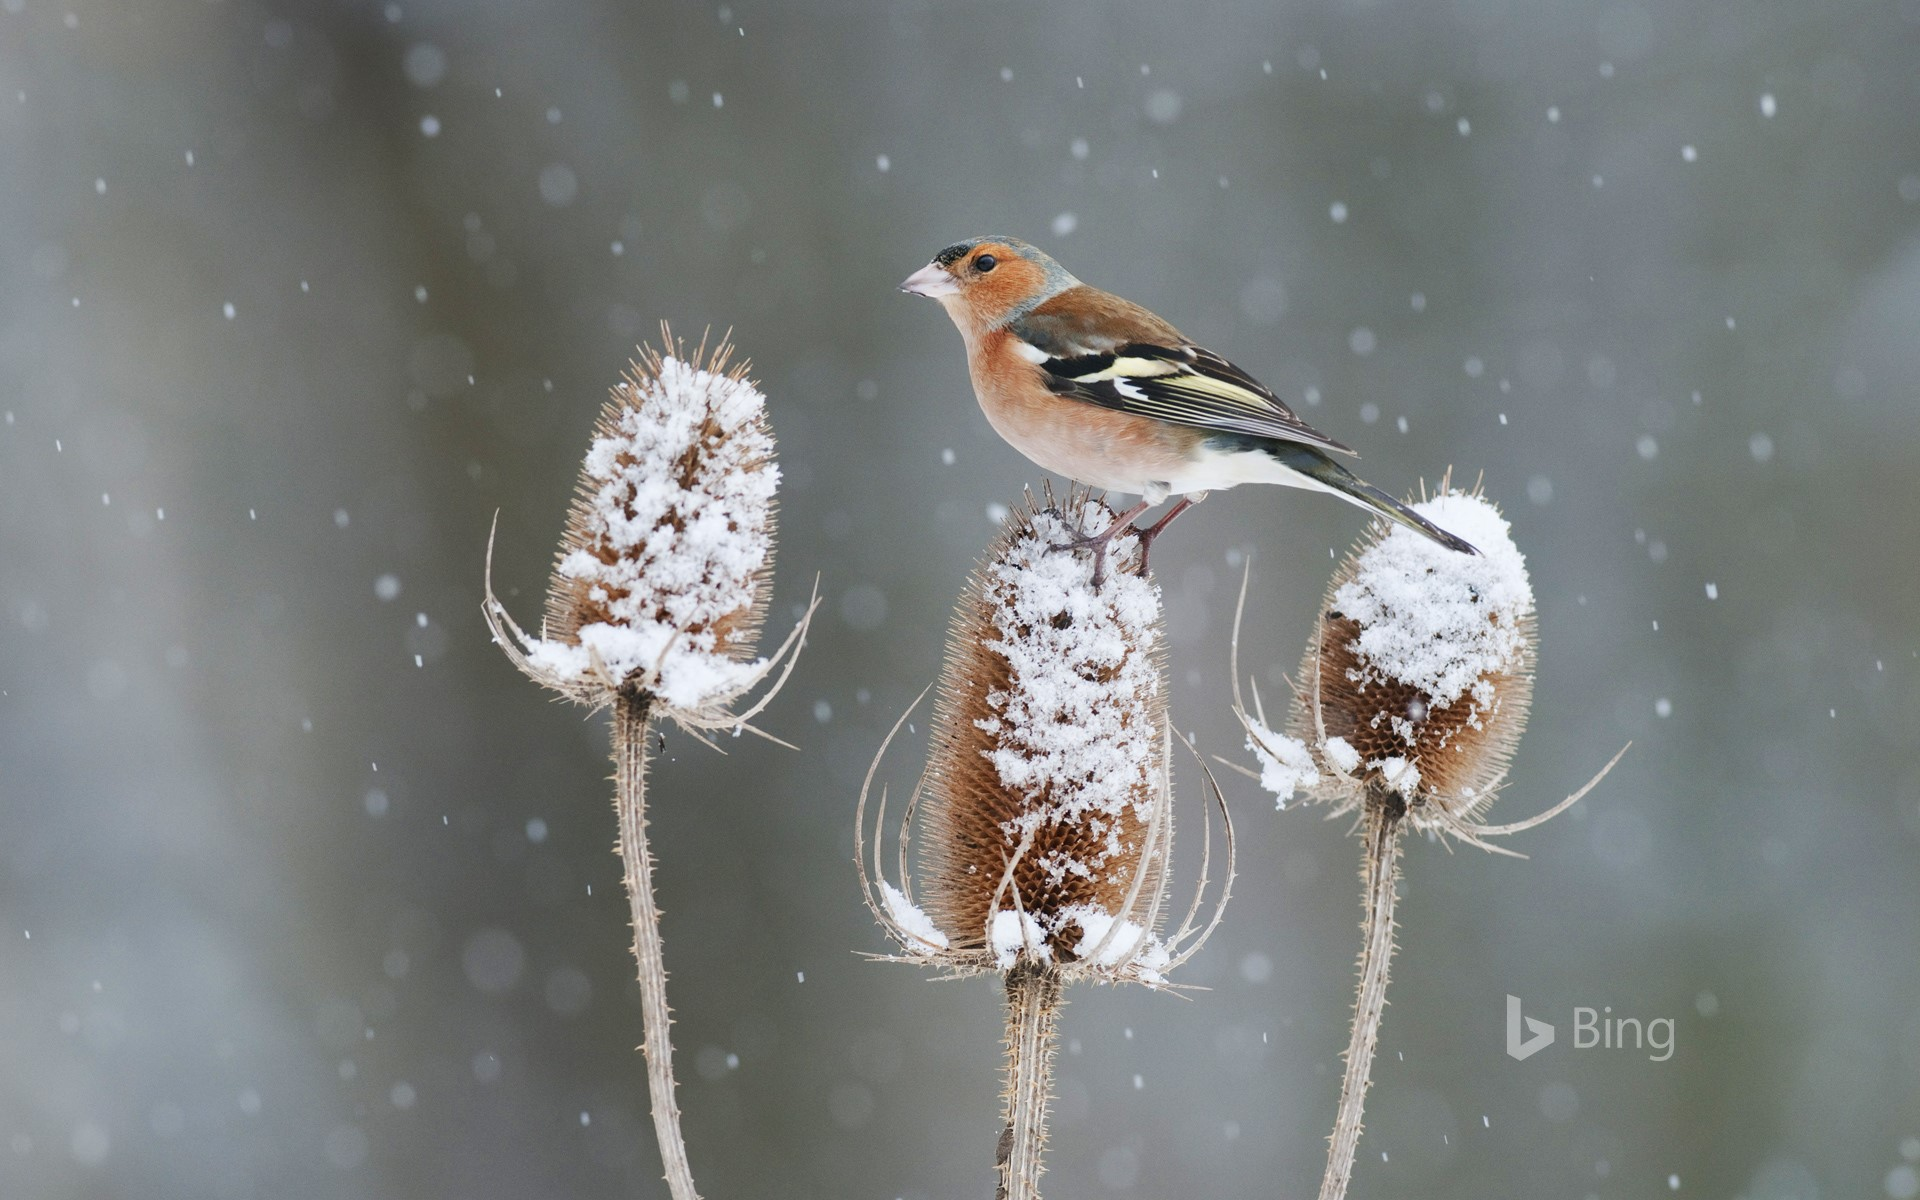 A chaffinch perched on a snow-covered teasel in Kent, England